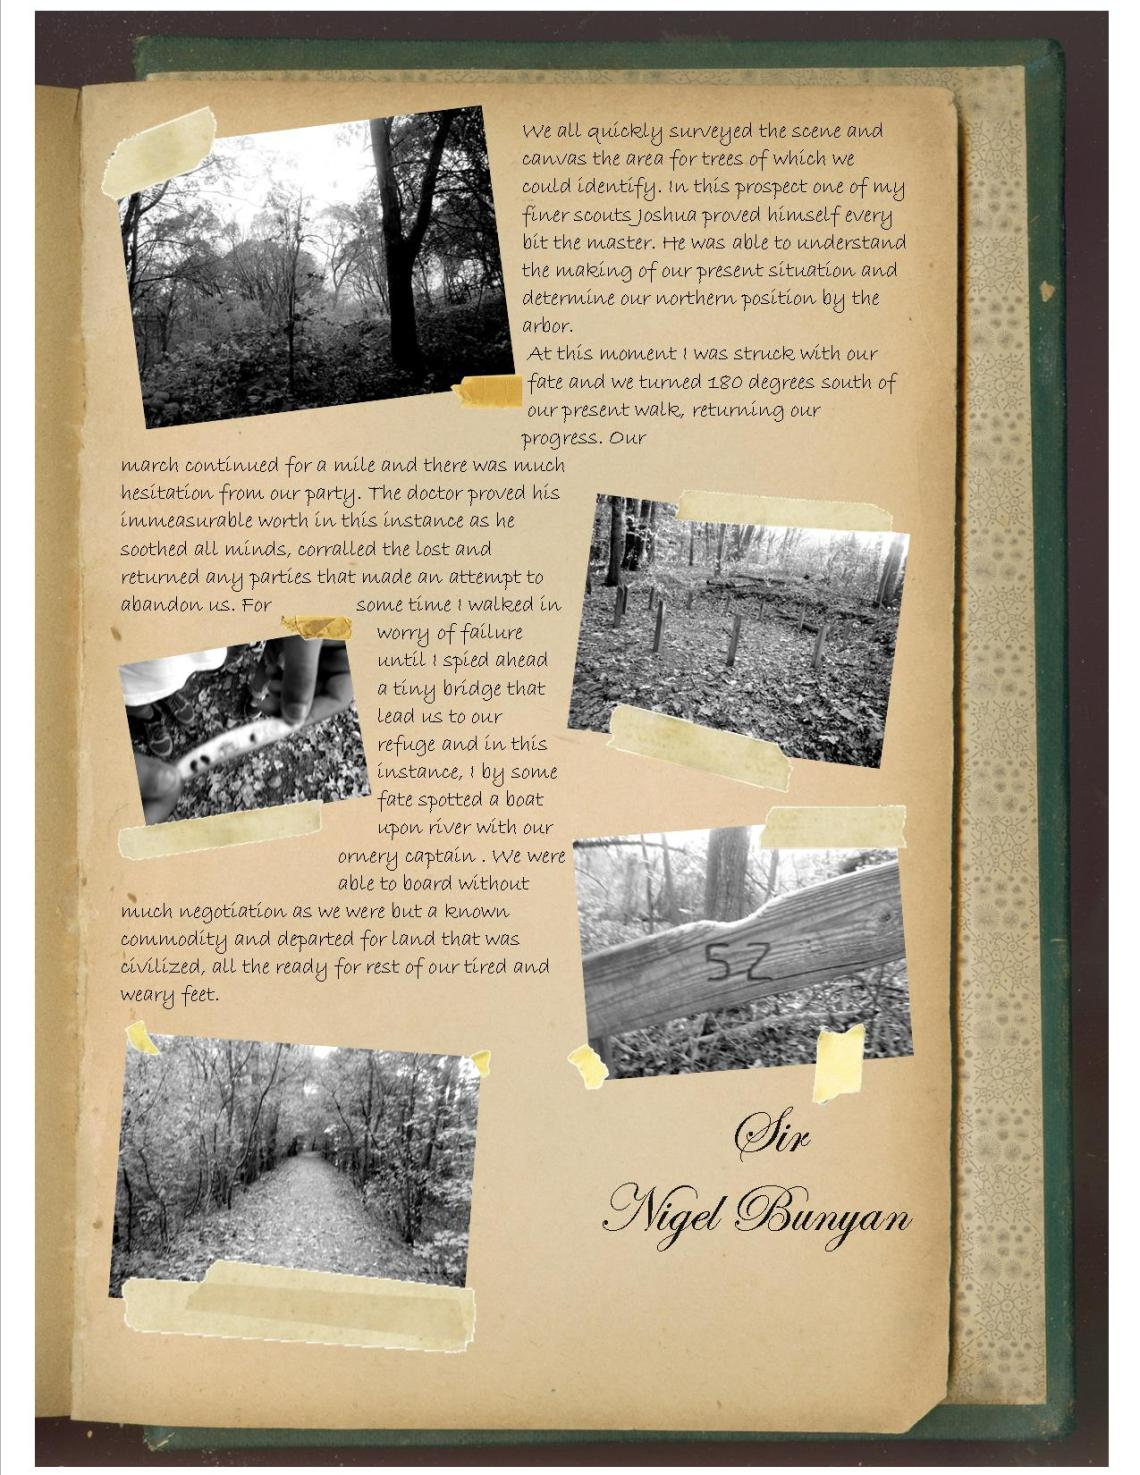 cold springs journal entry pg 2